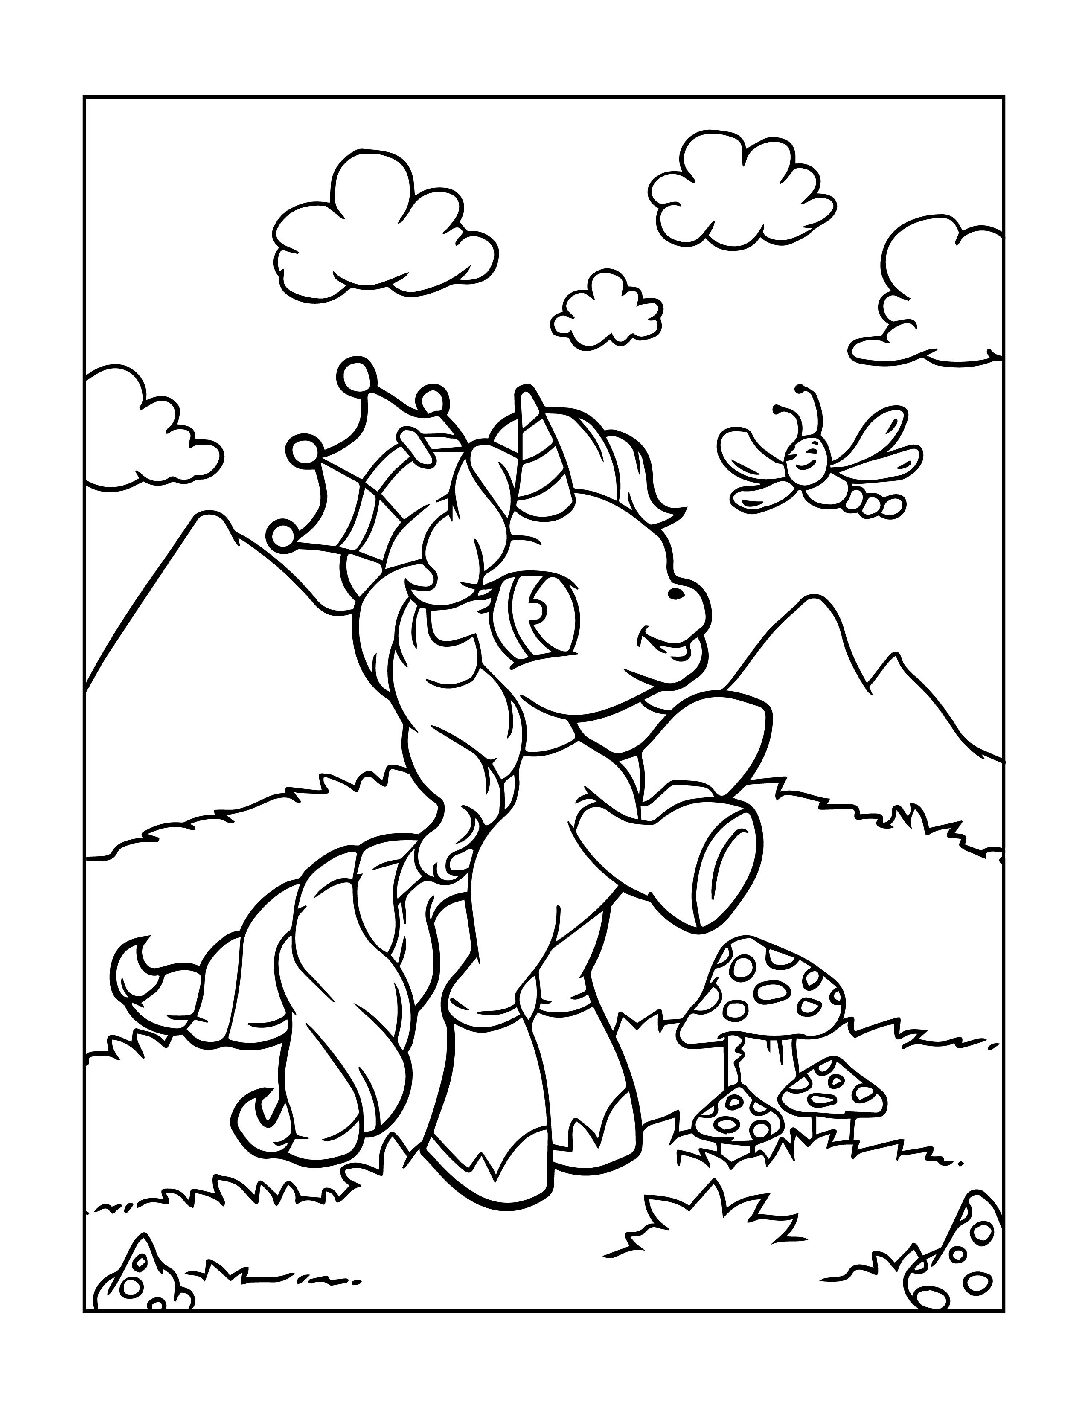 Coloring-Pages-Unicorns-2-pdf Free Printable Unicorn Colouring Pages